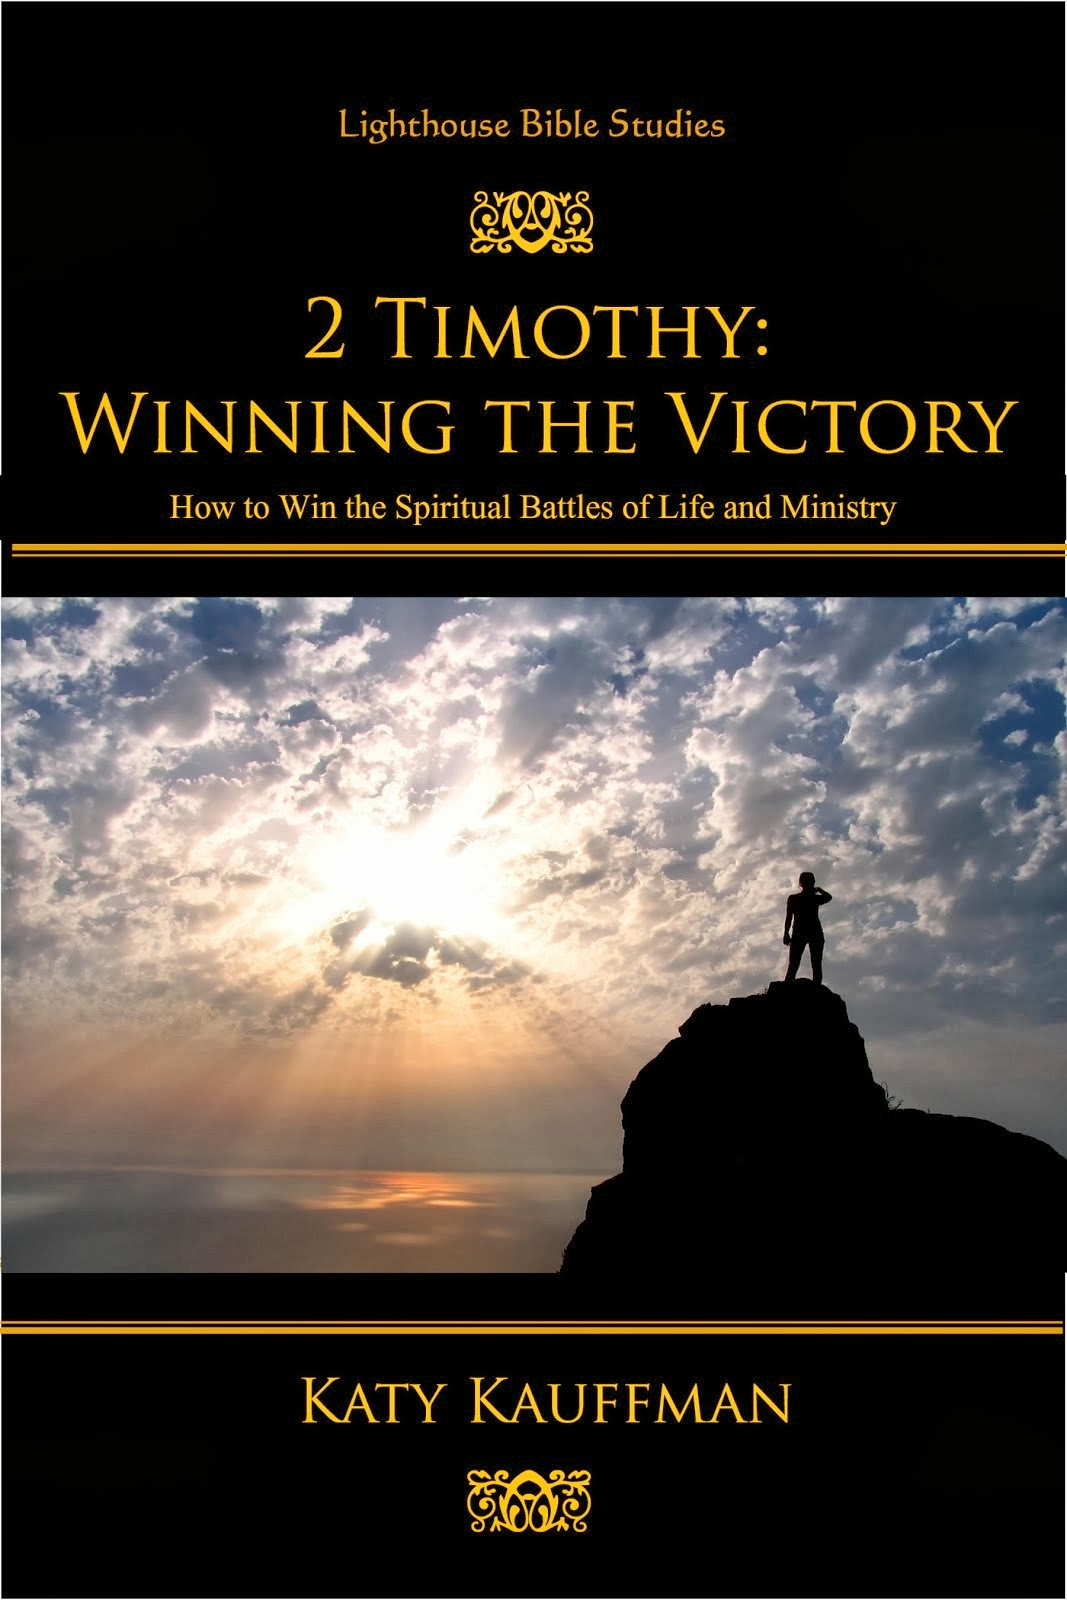 My New Book, 2 Timothy: Winning the Victory